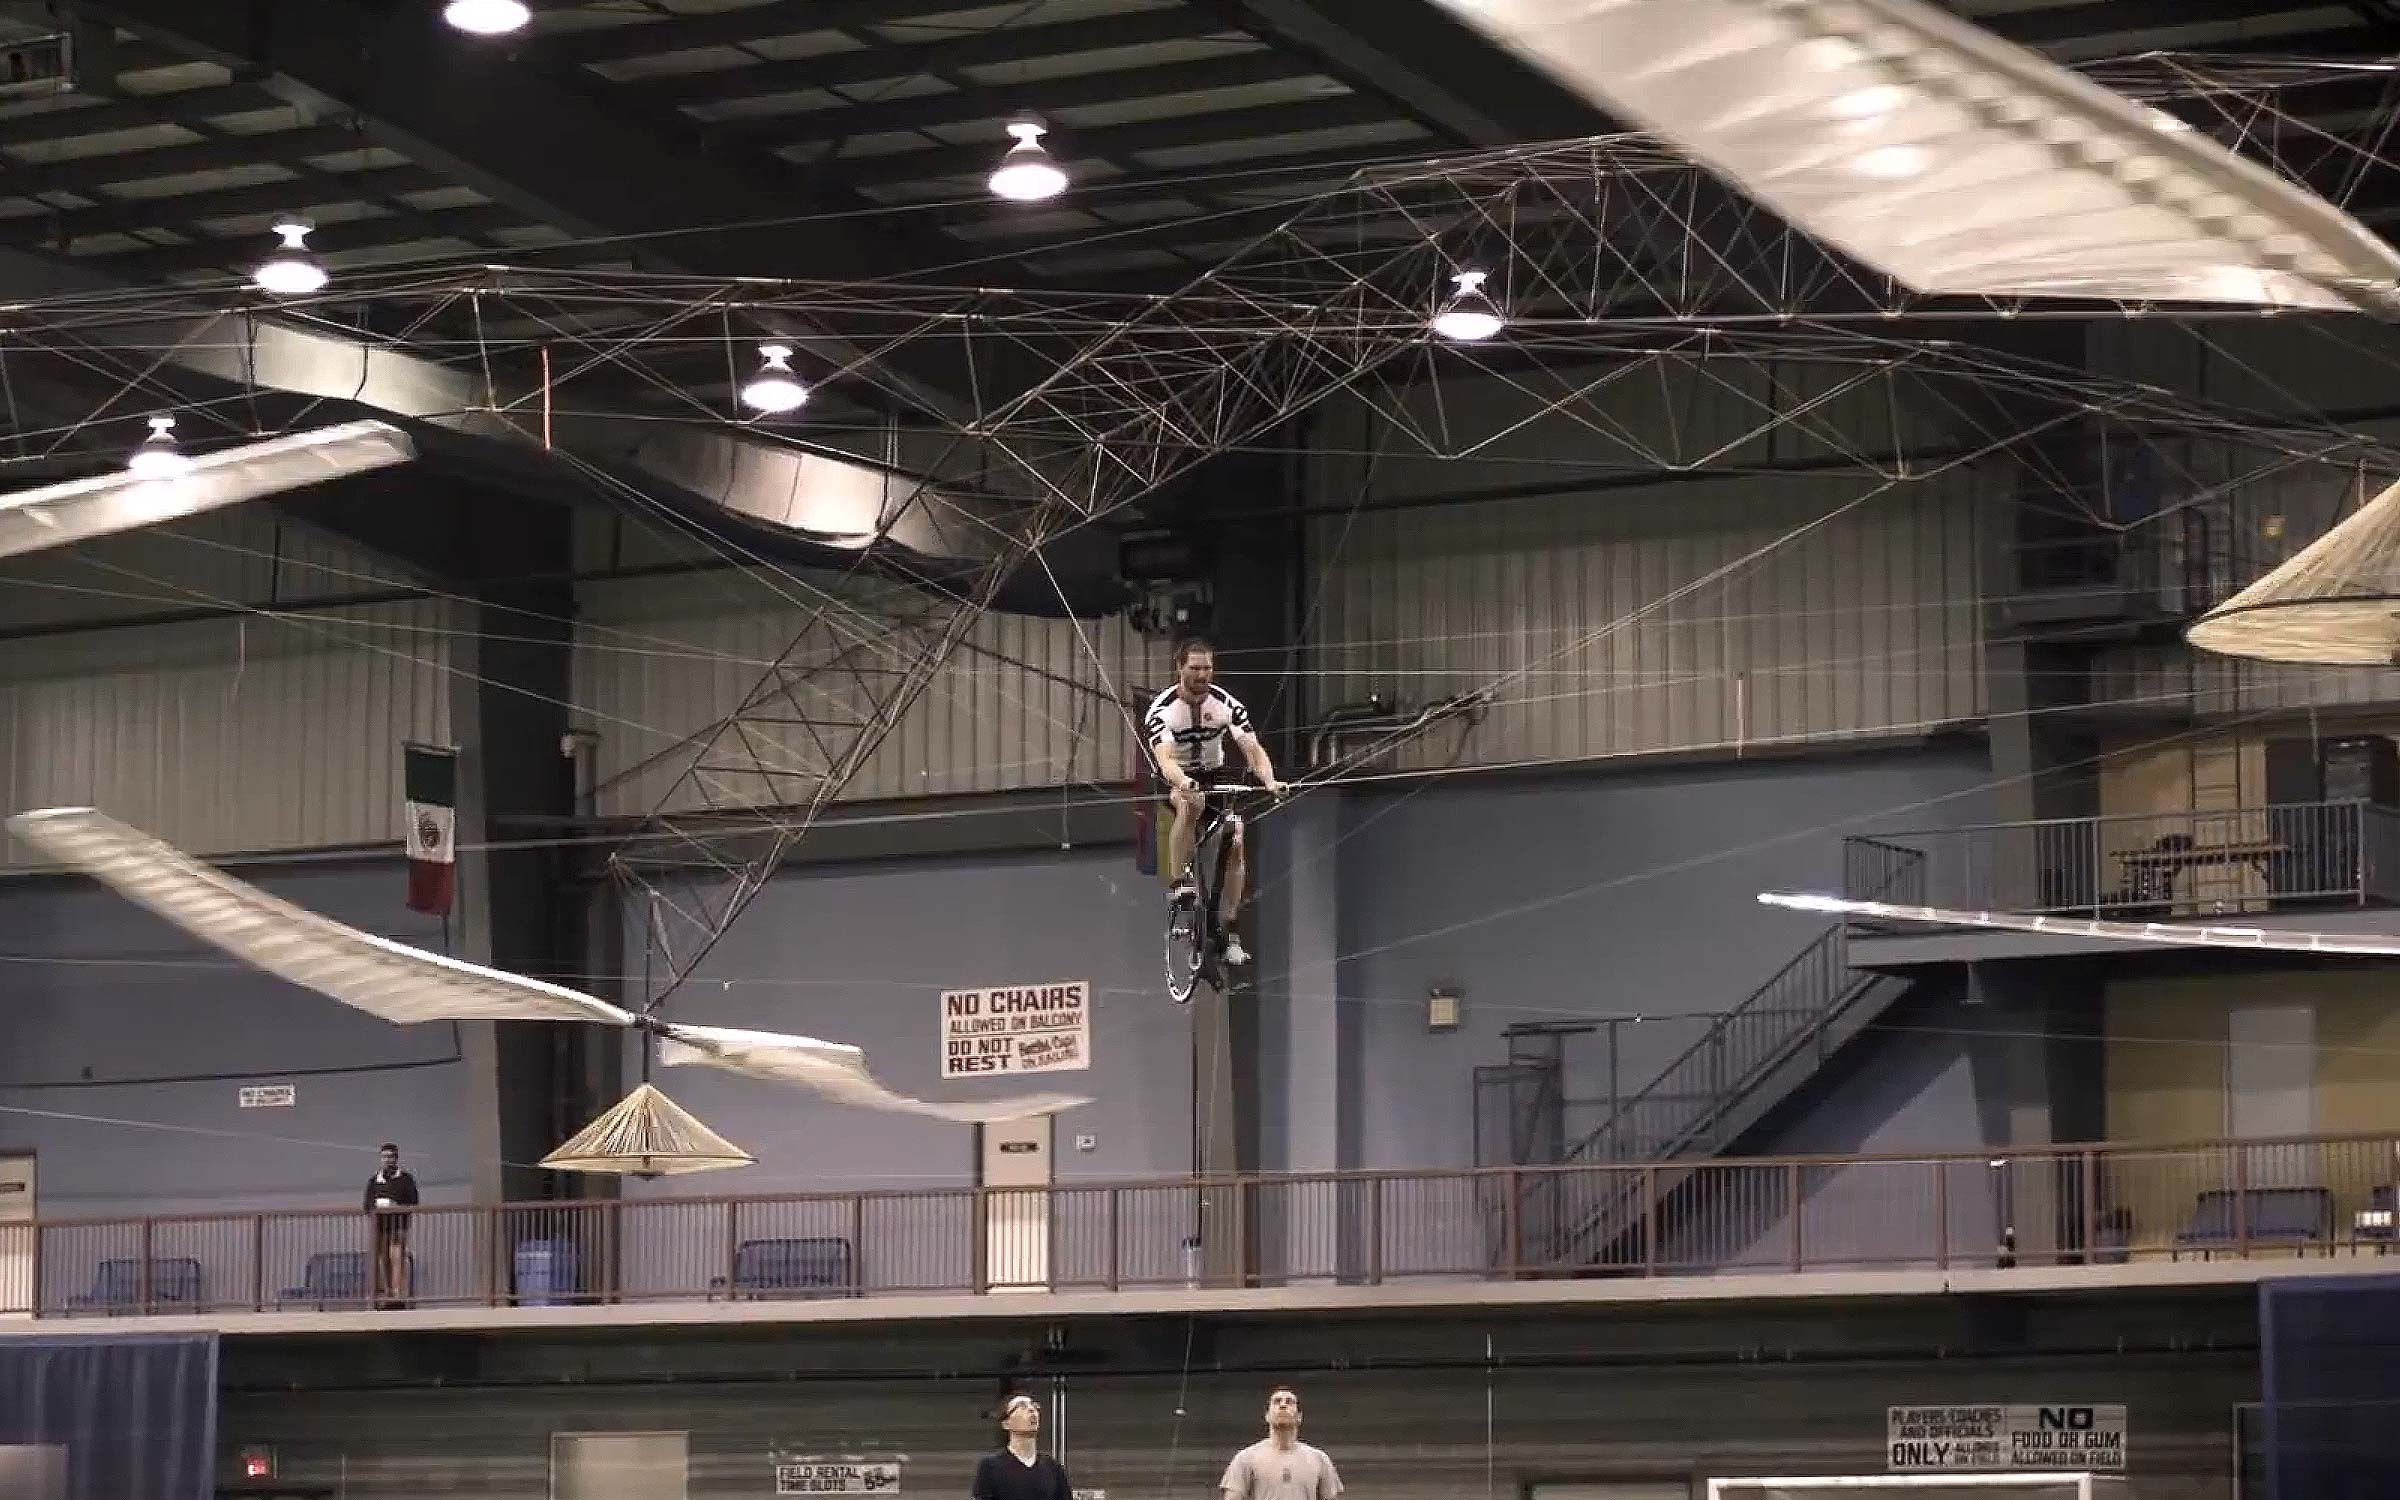 Atlas - The Human Powered Helicopter